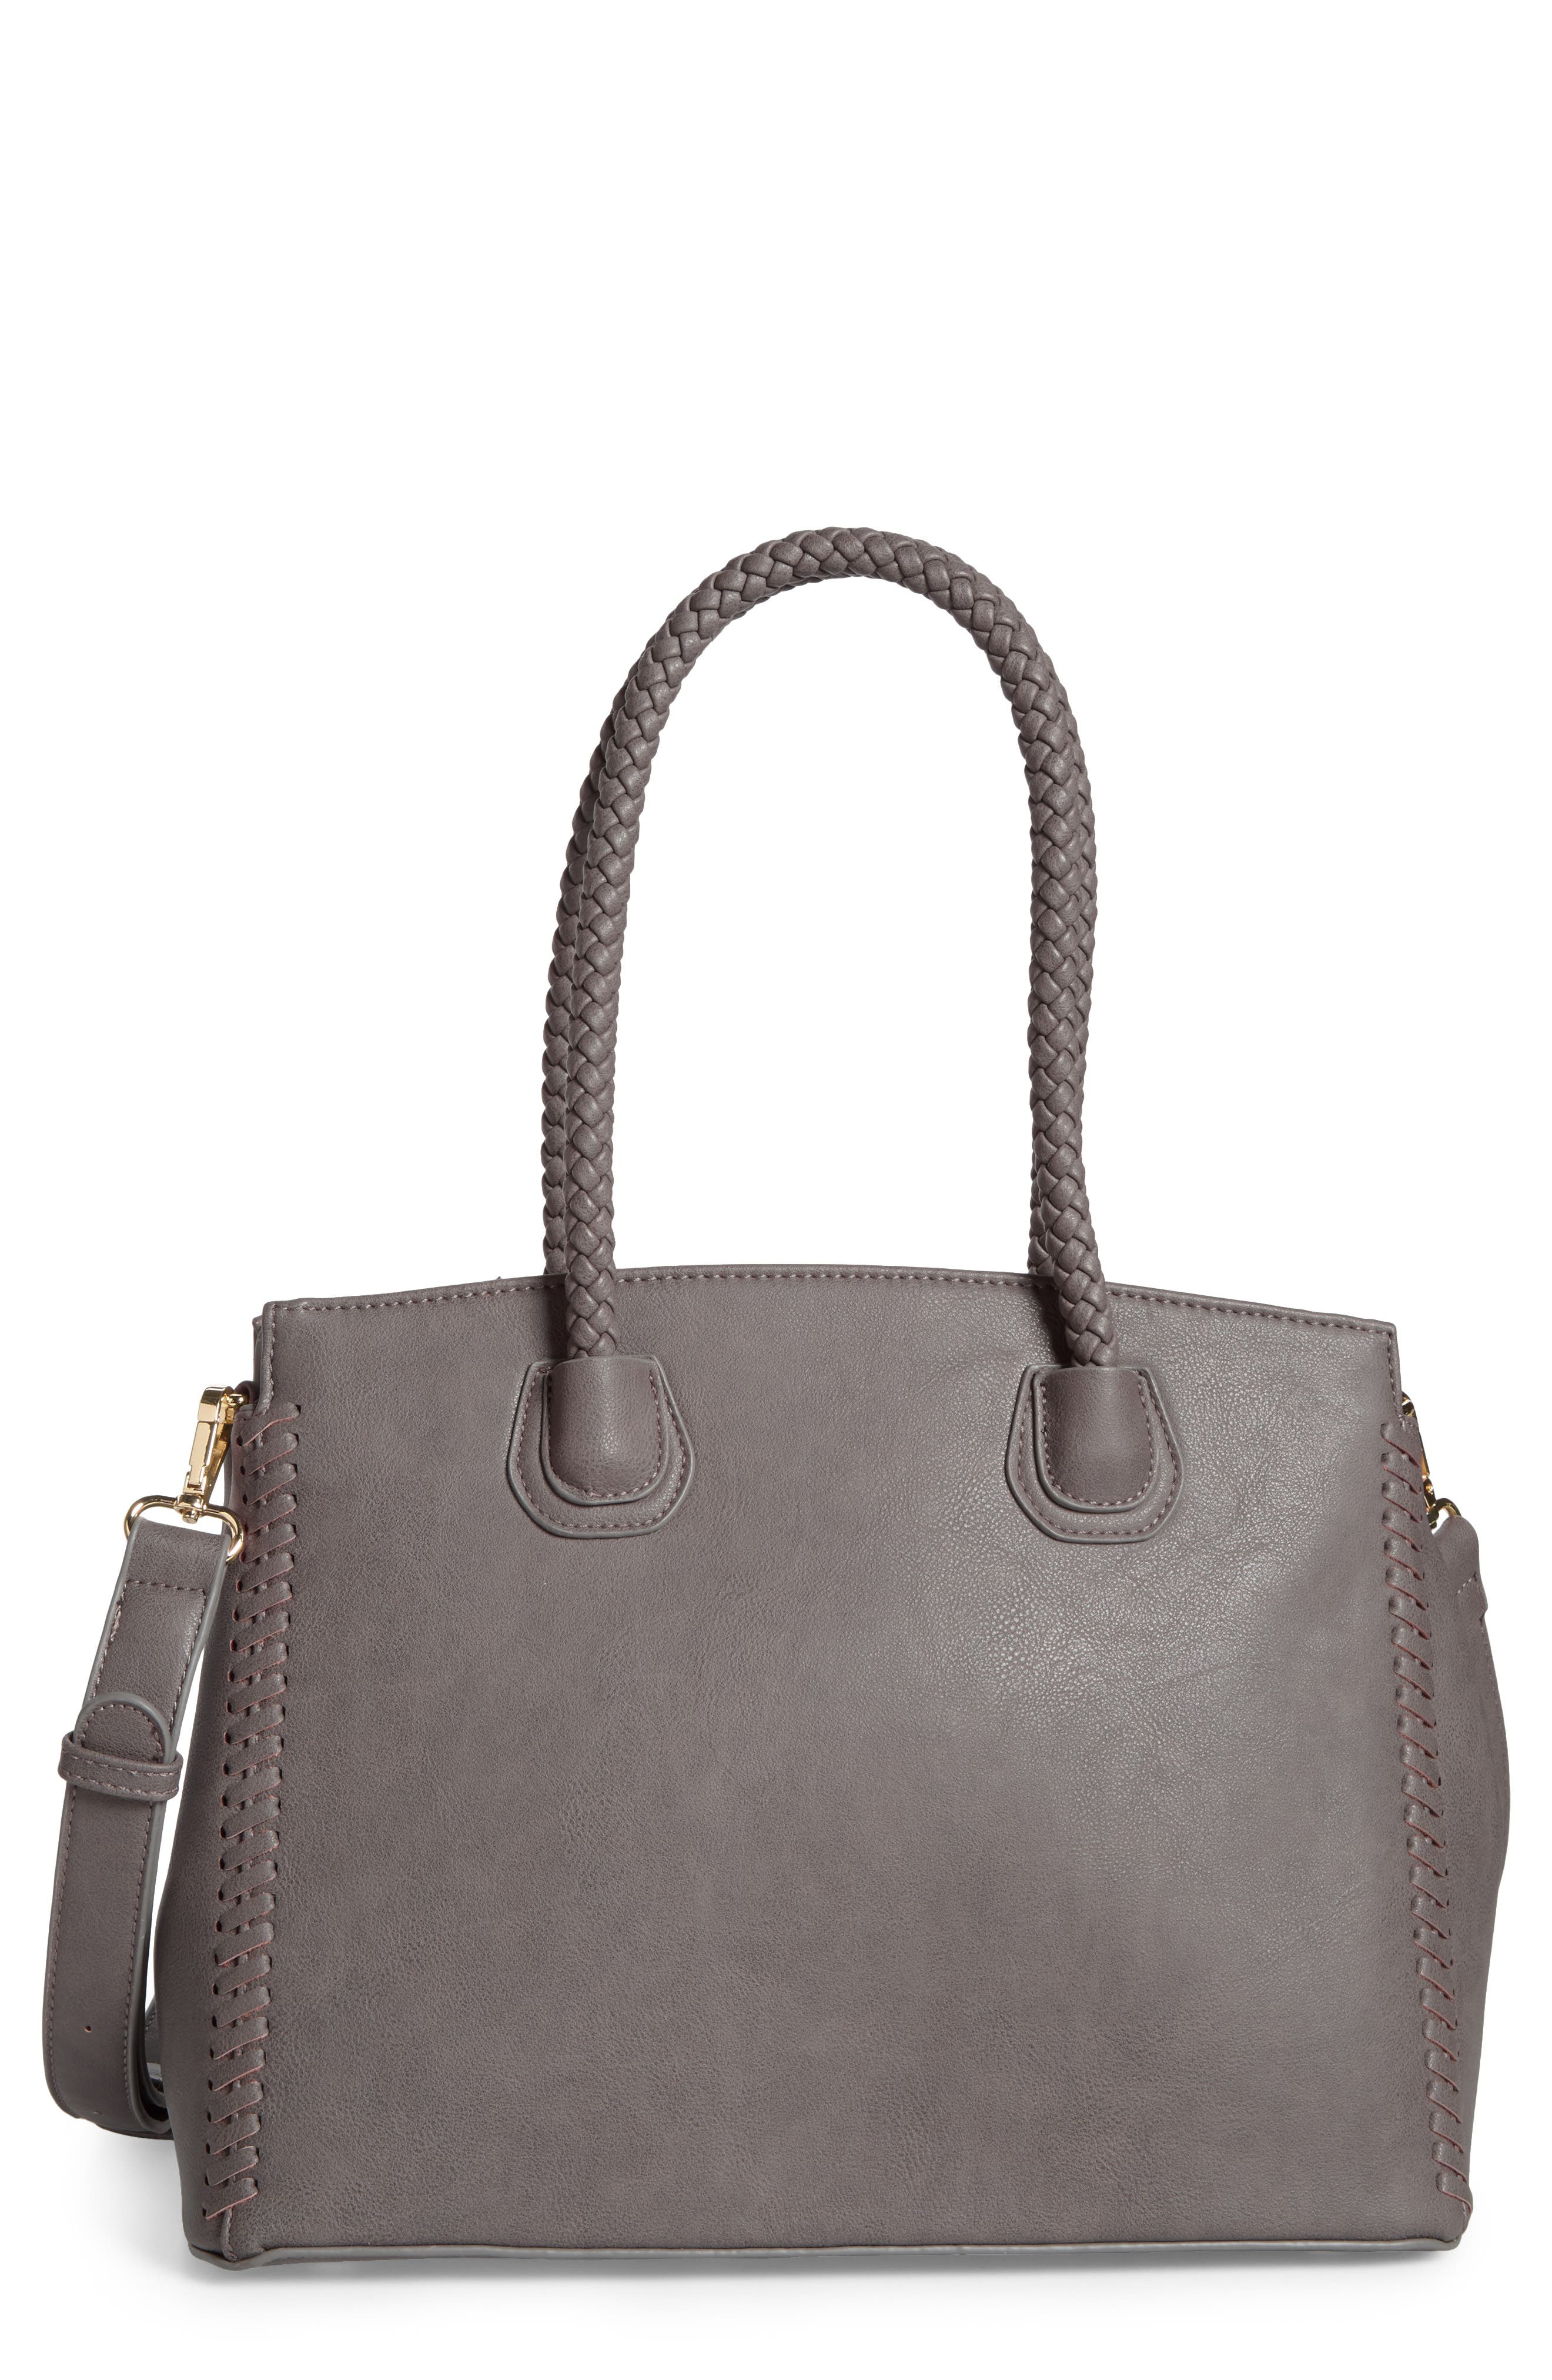 Grey Faux Leather Handbags & Purses | Nordstrom